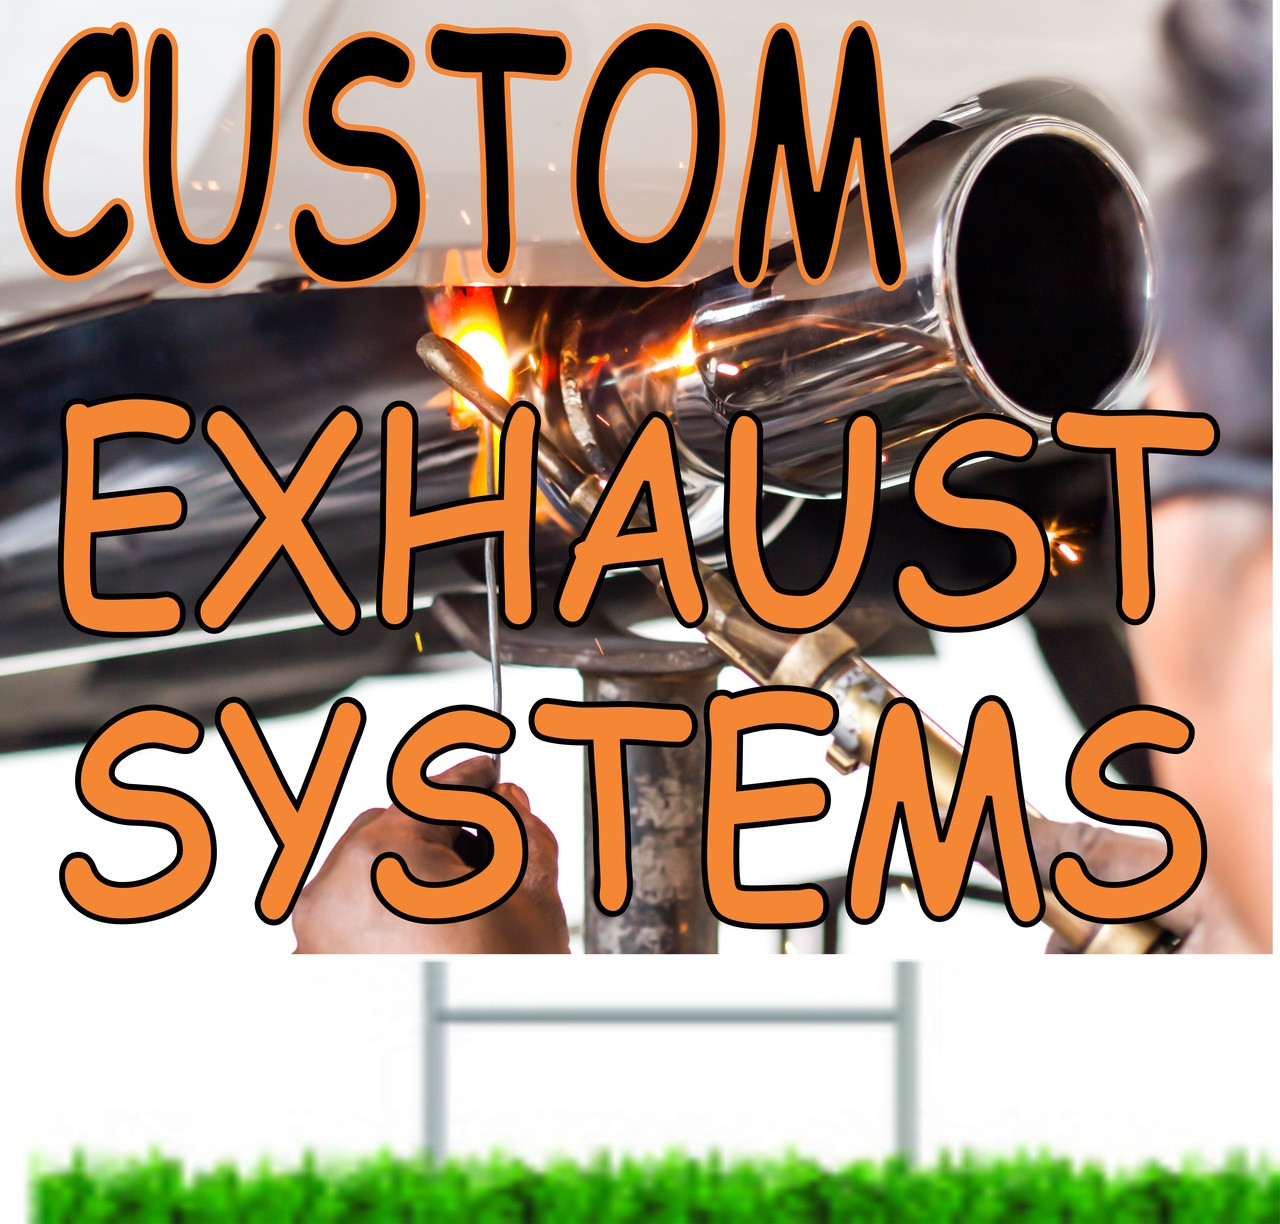 Custom Exhaust System auto repair shop yard signs.